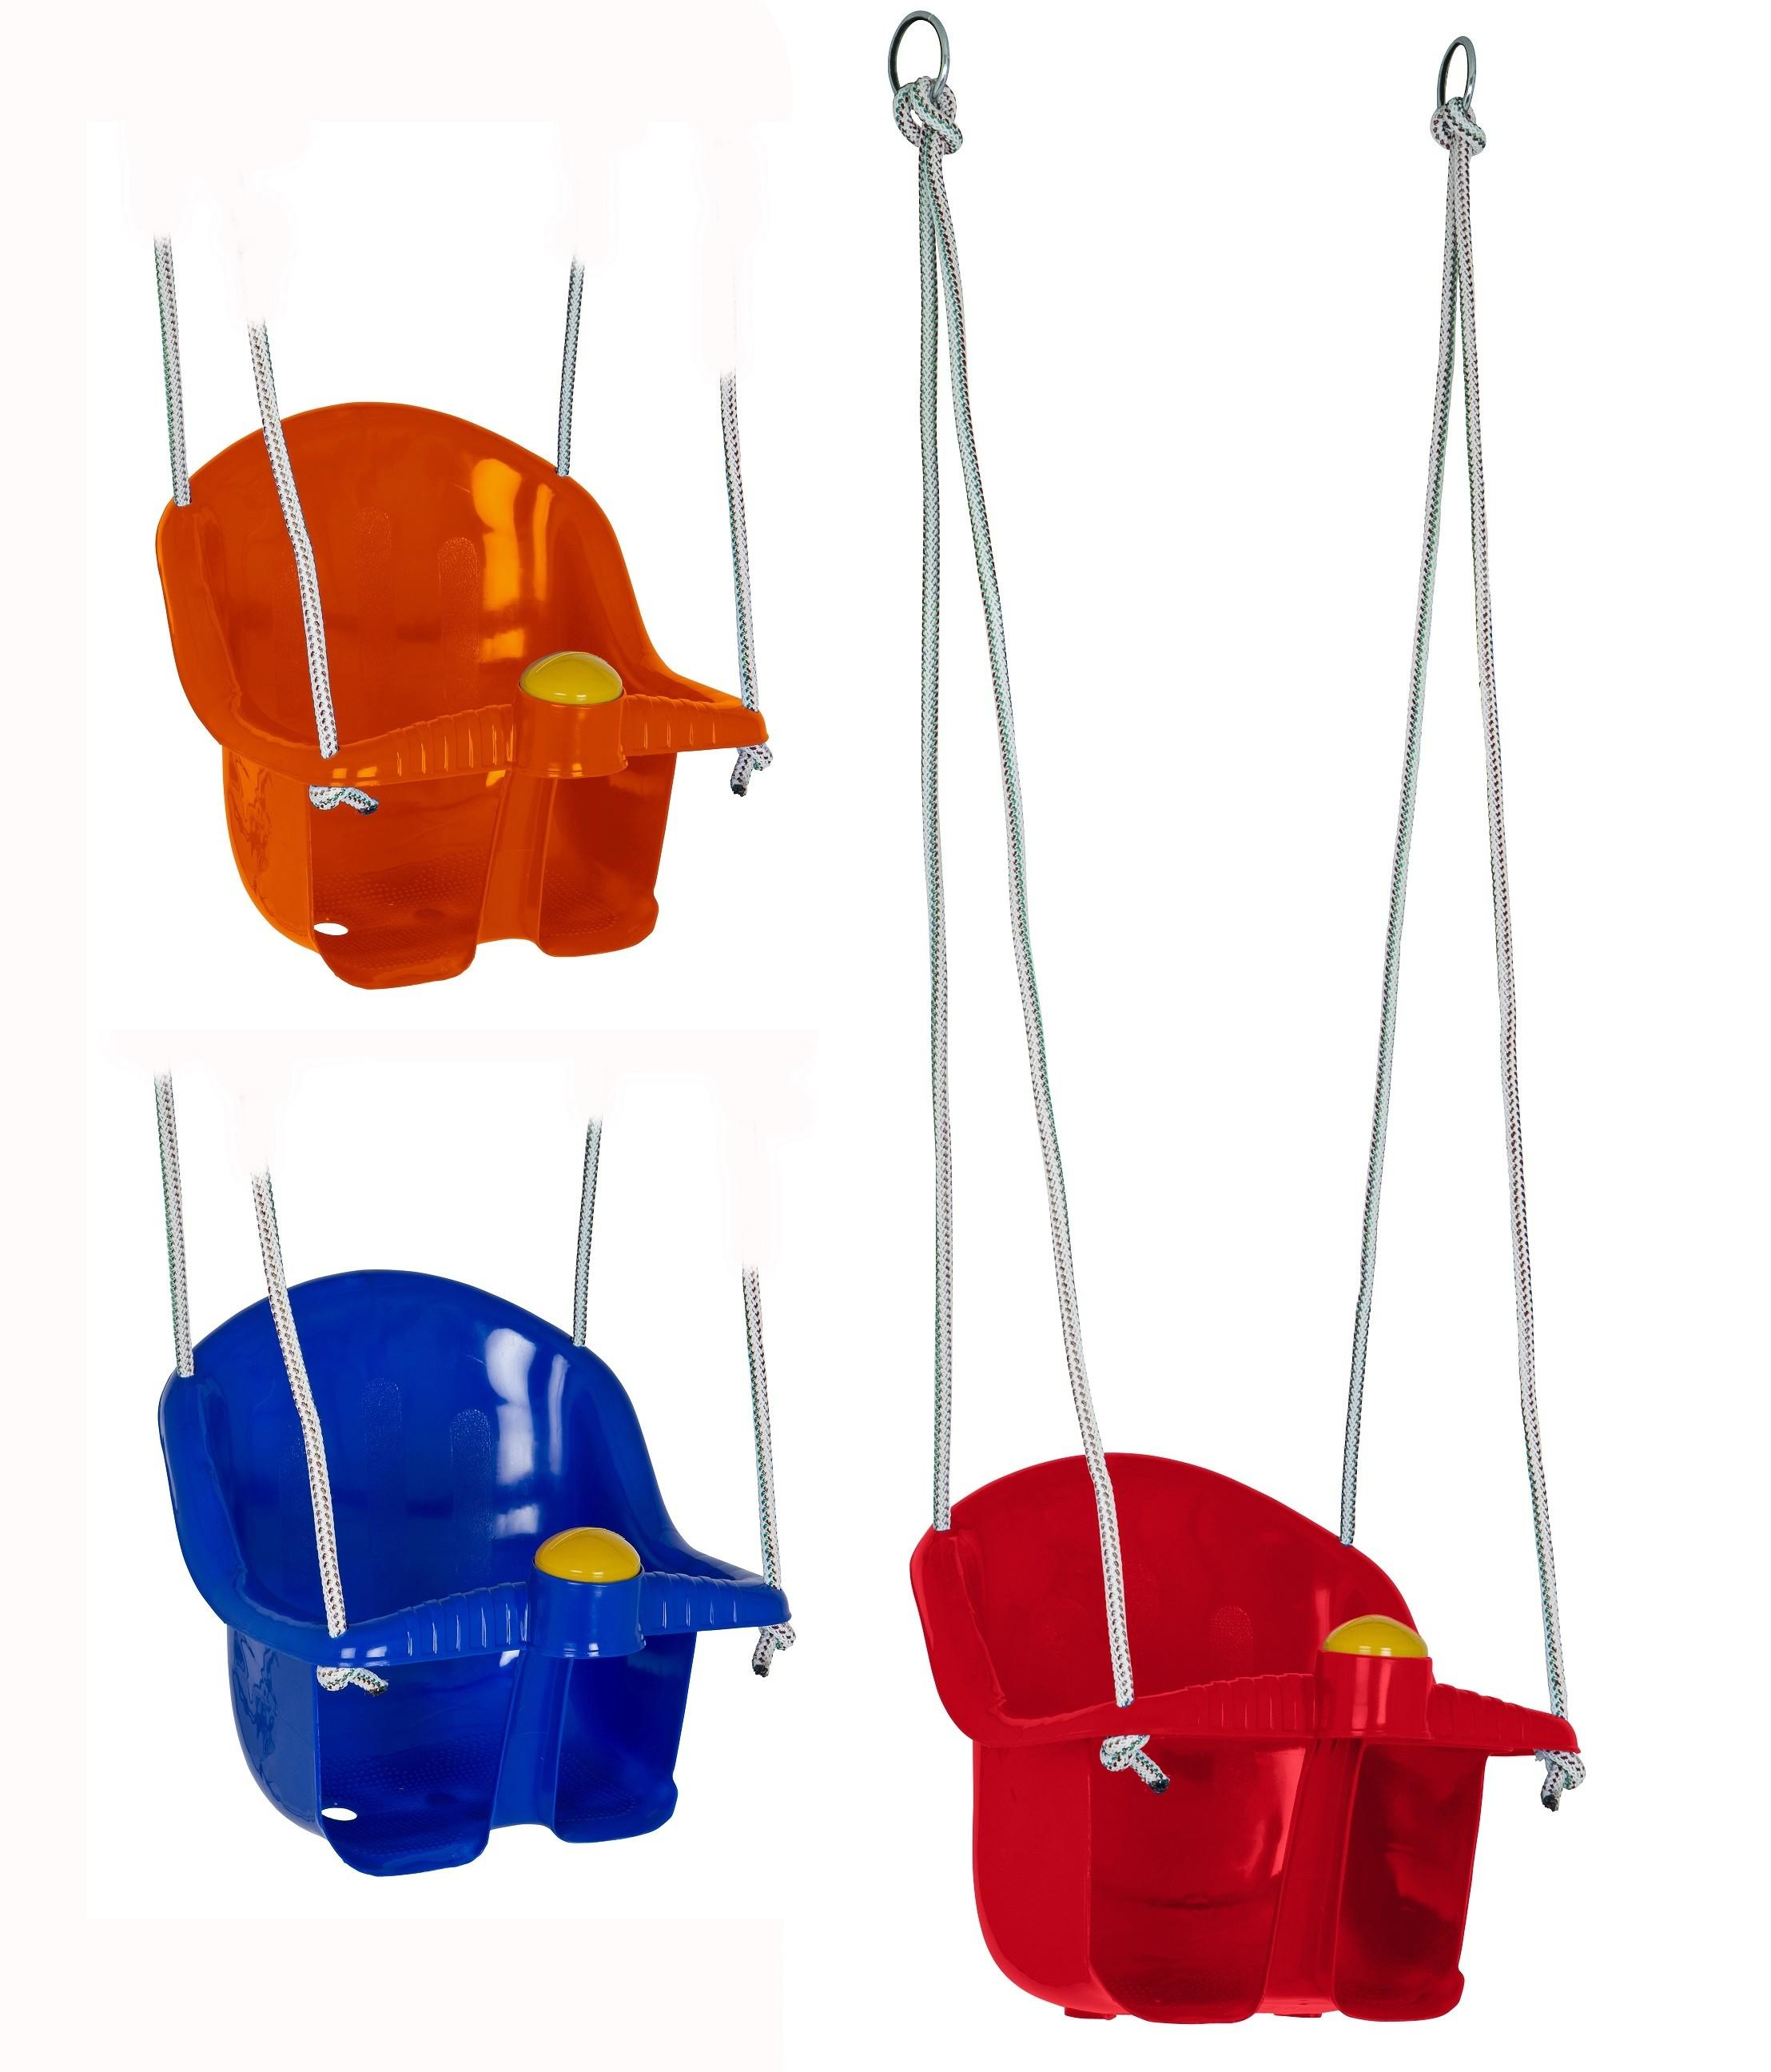 Childrens Plastic Rope Swing Seat Mounting